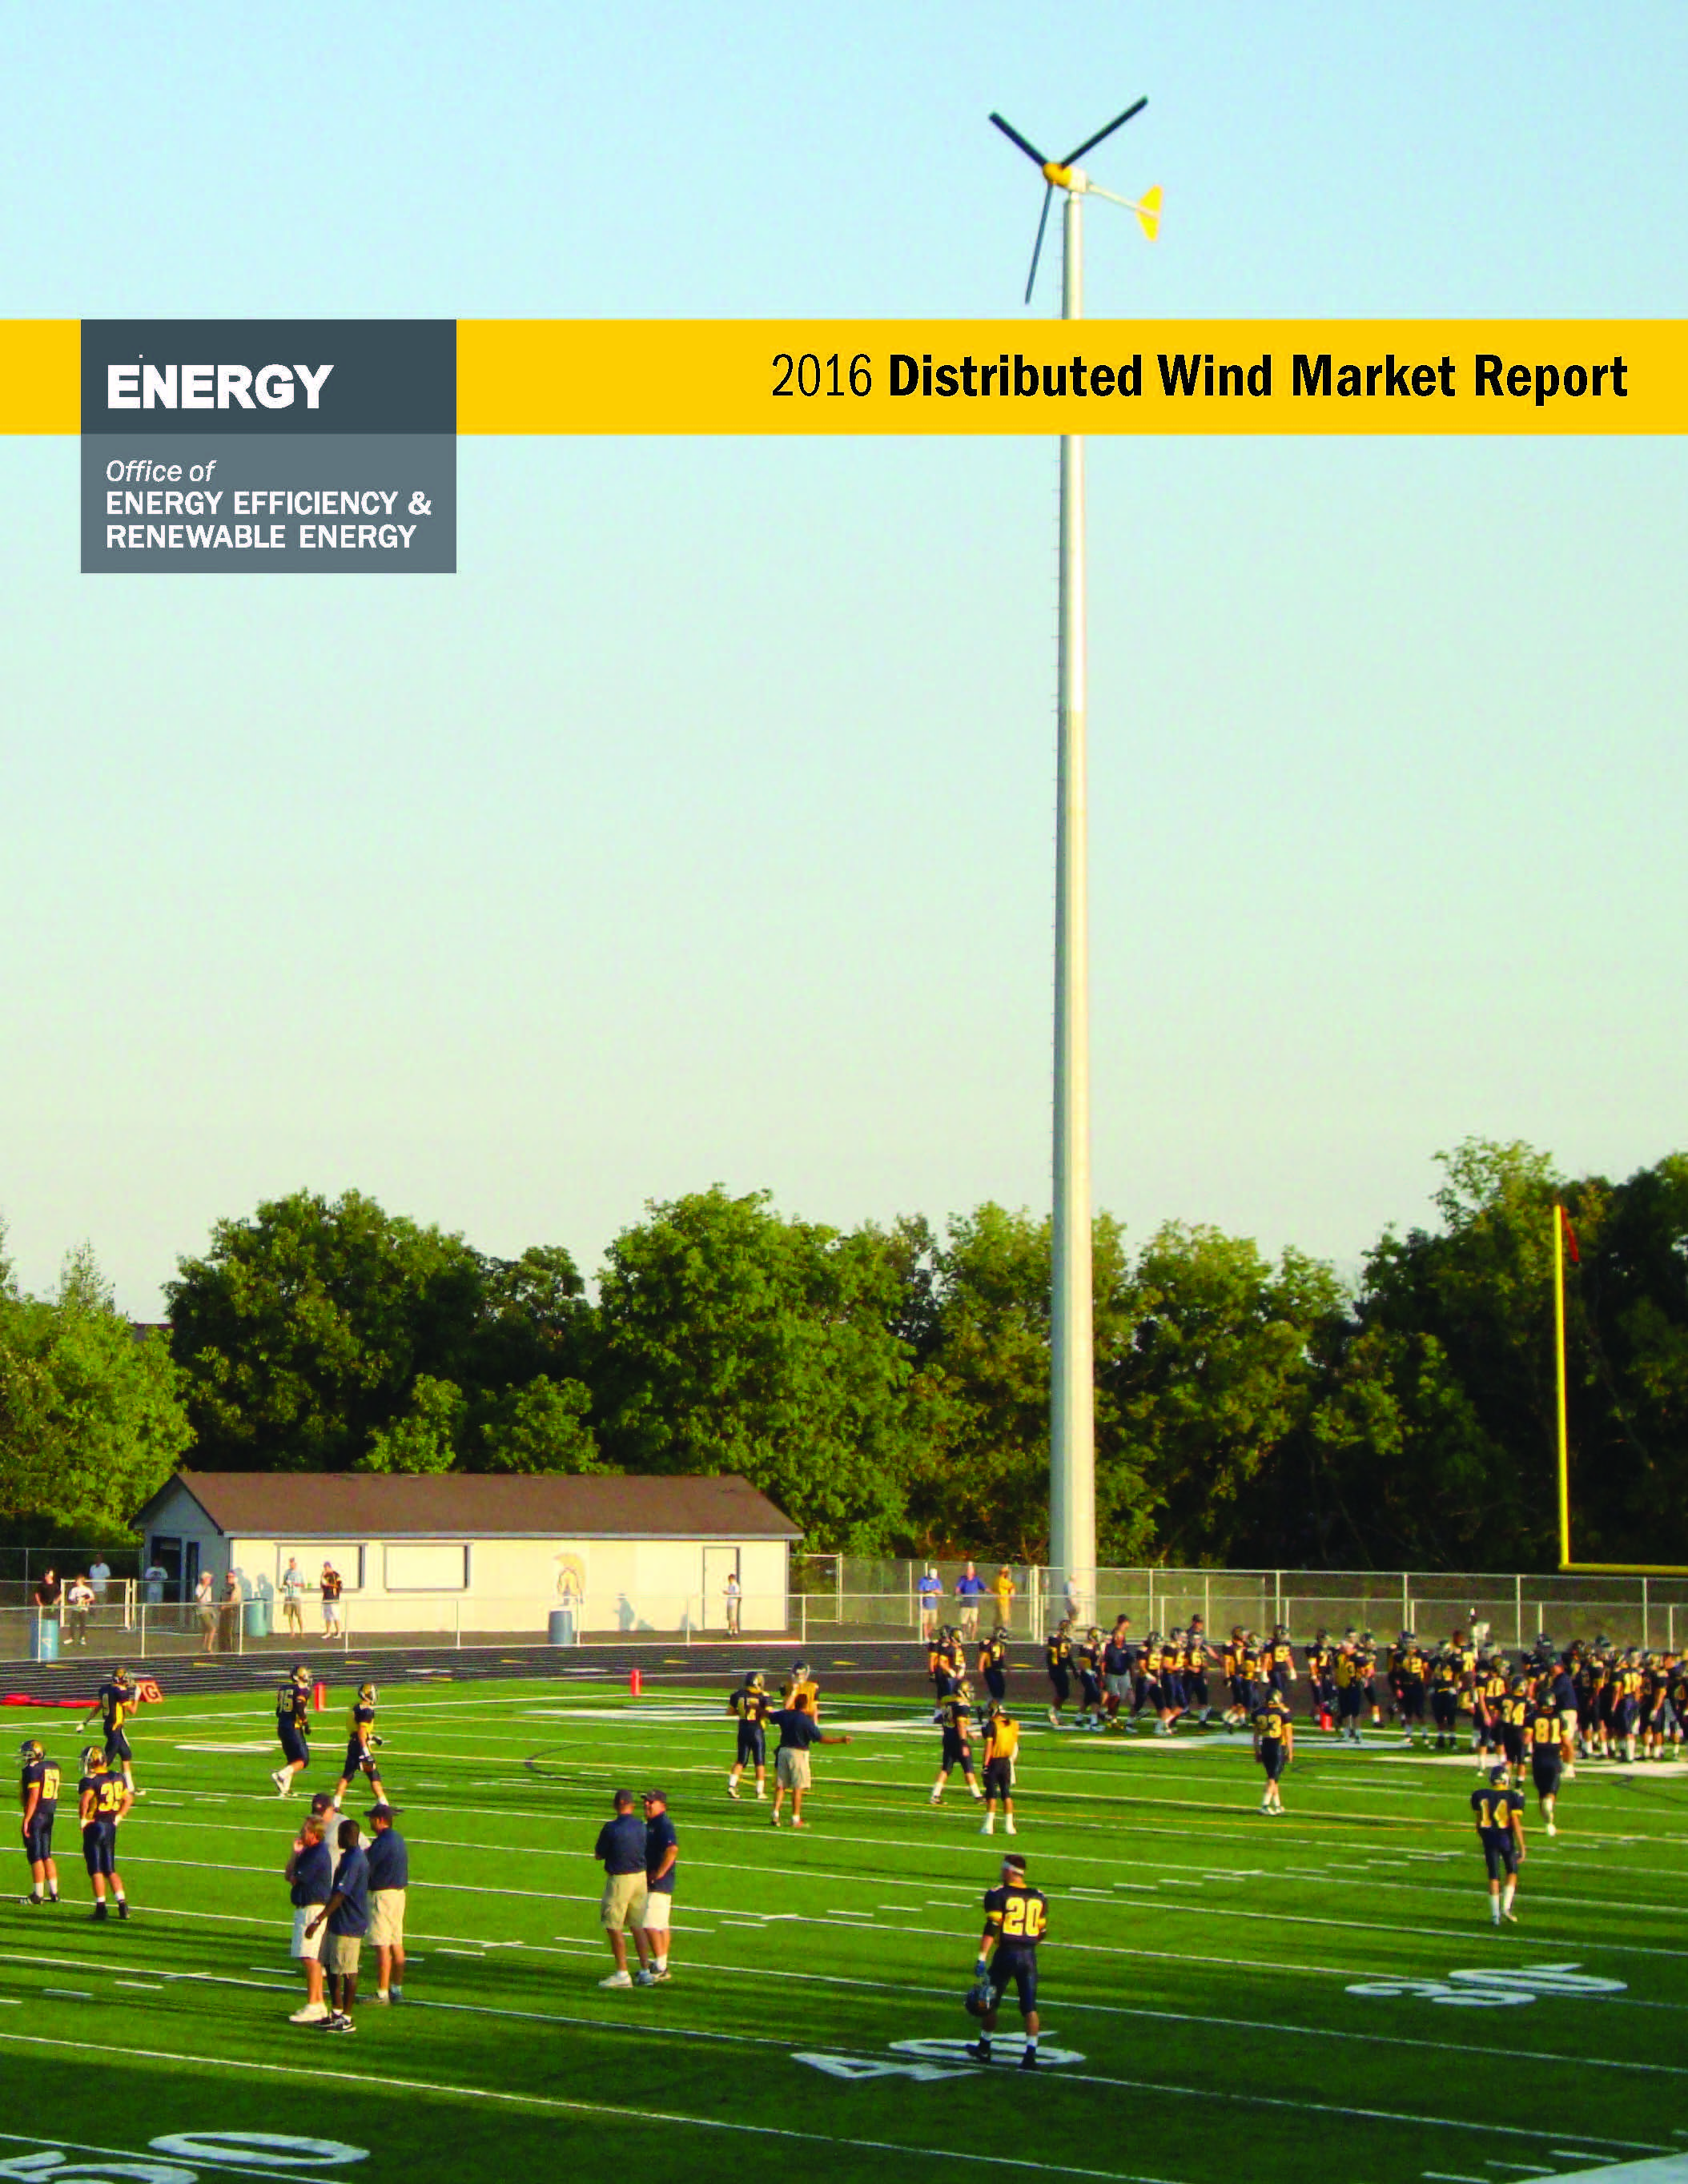 The cover of the 2016 Distributed Wind Report.